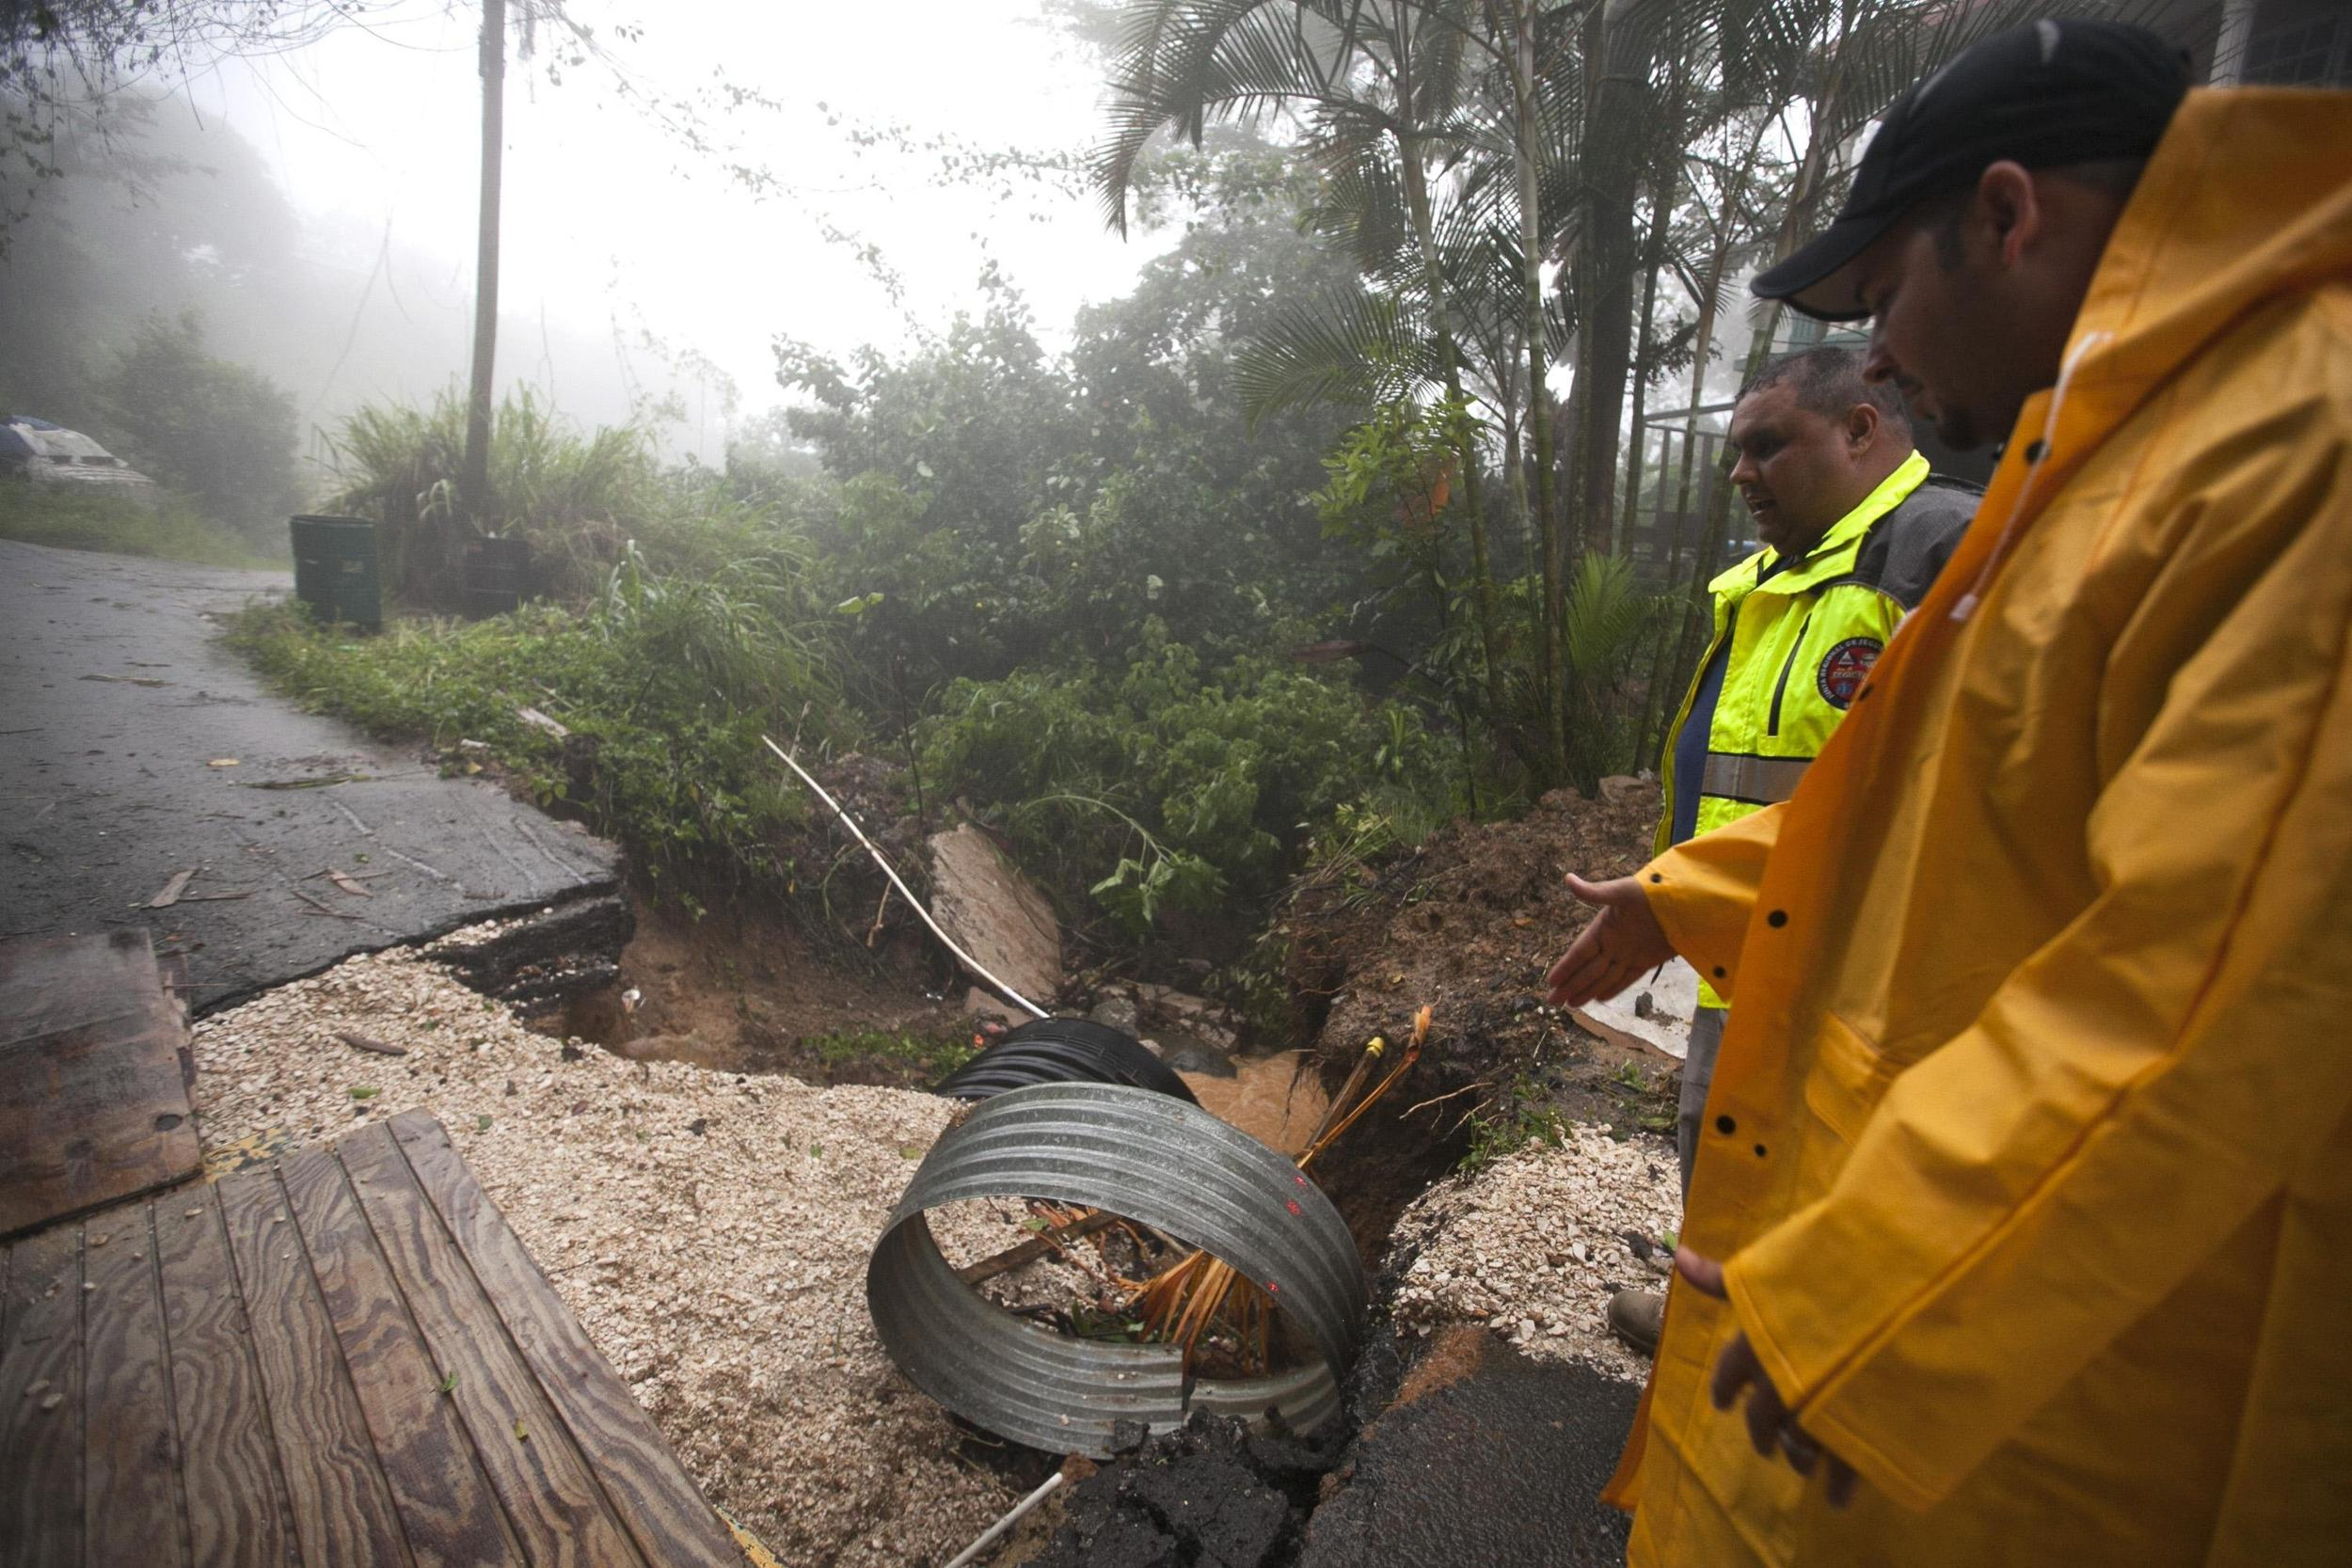 Image: Villalba Mayor Ortiz and Bonilla, director of the Emergency Management Agency, stop to check damages affecting improvements to the aqueduct infrastructure in the sector after heavy rain, in Aceituna town